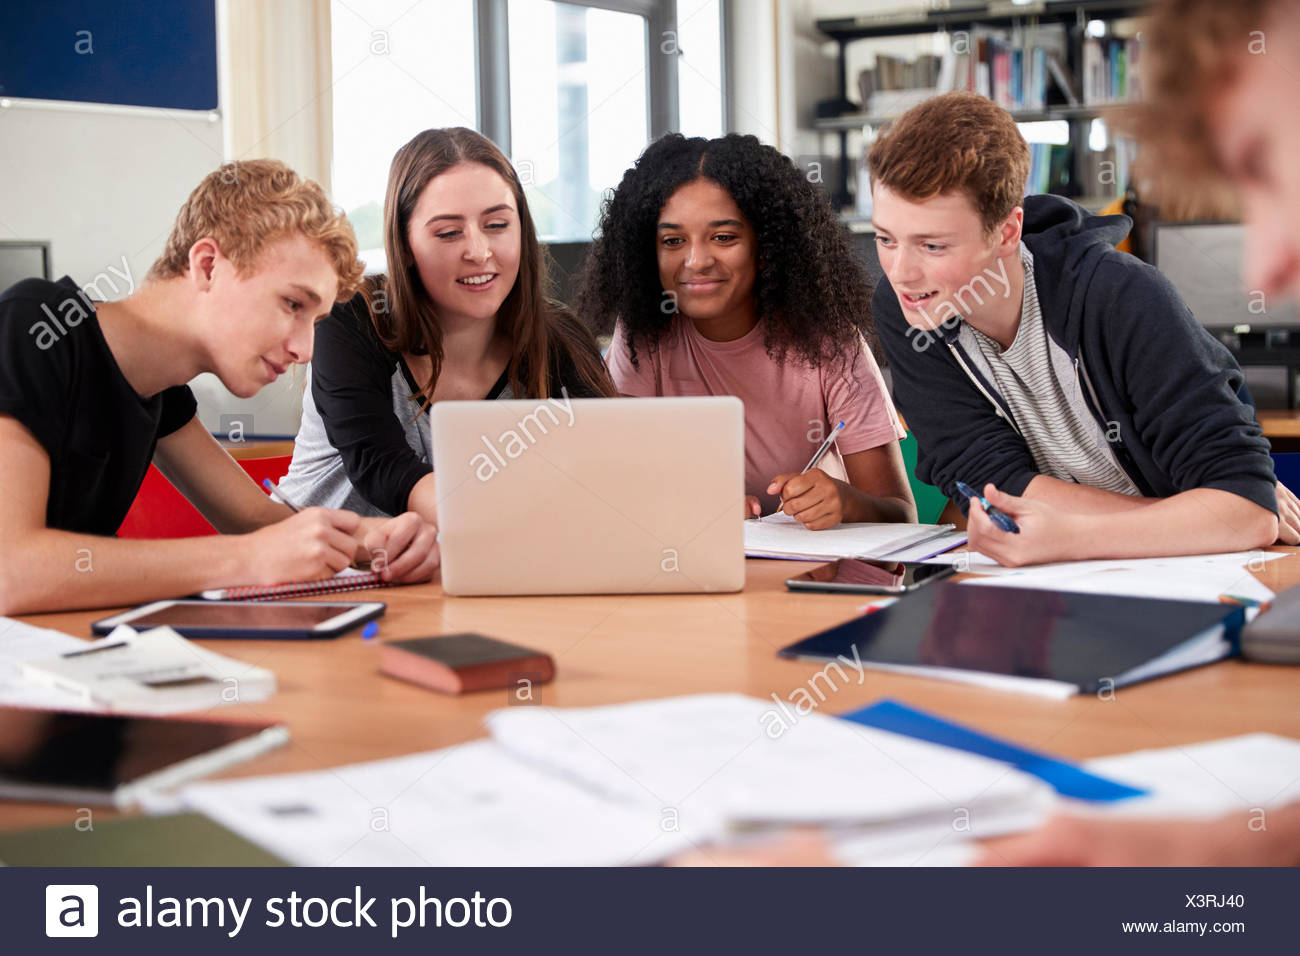 Group Of College Students Collaborating On Project In Library - Stock Image